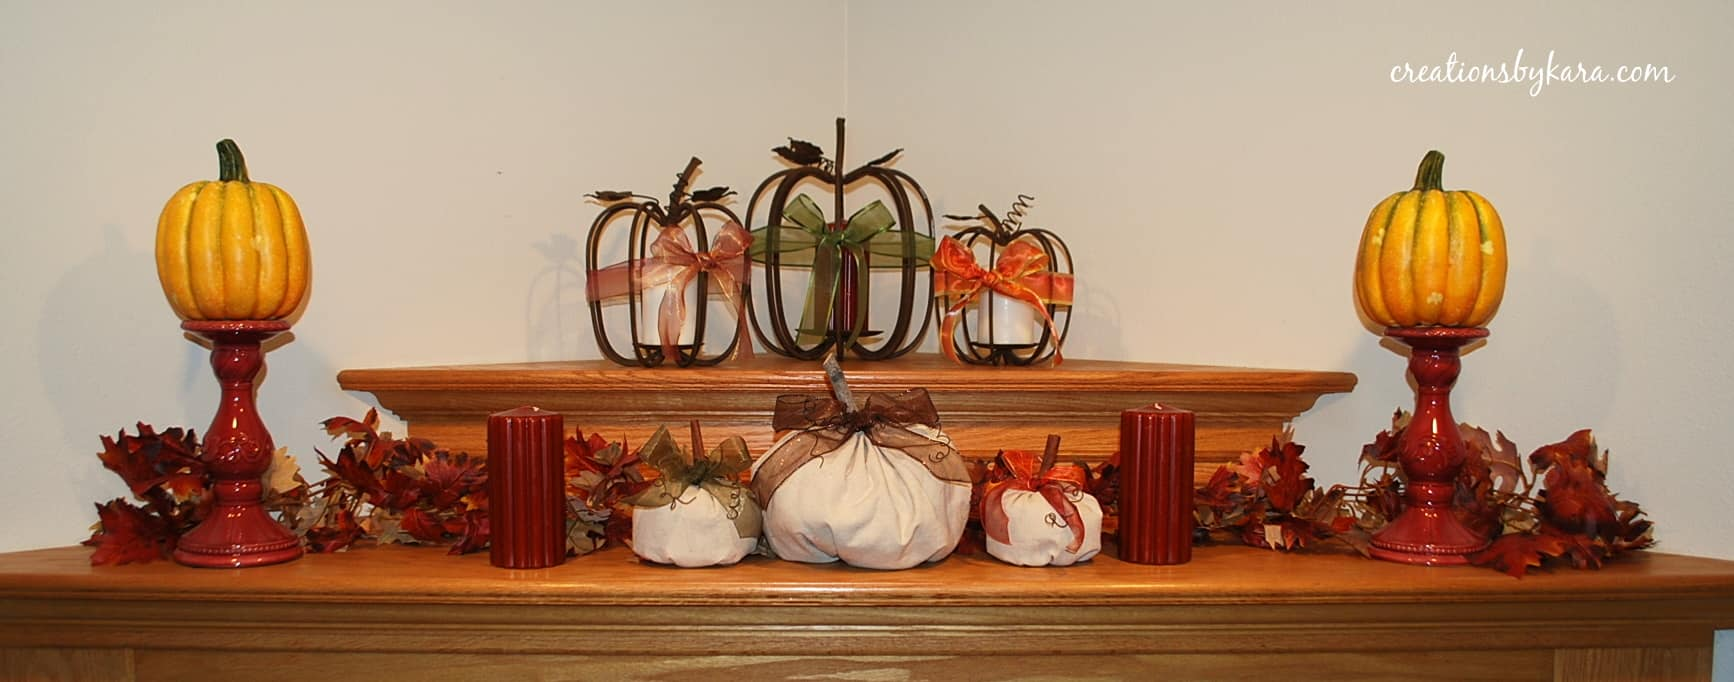 fall-home-decor